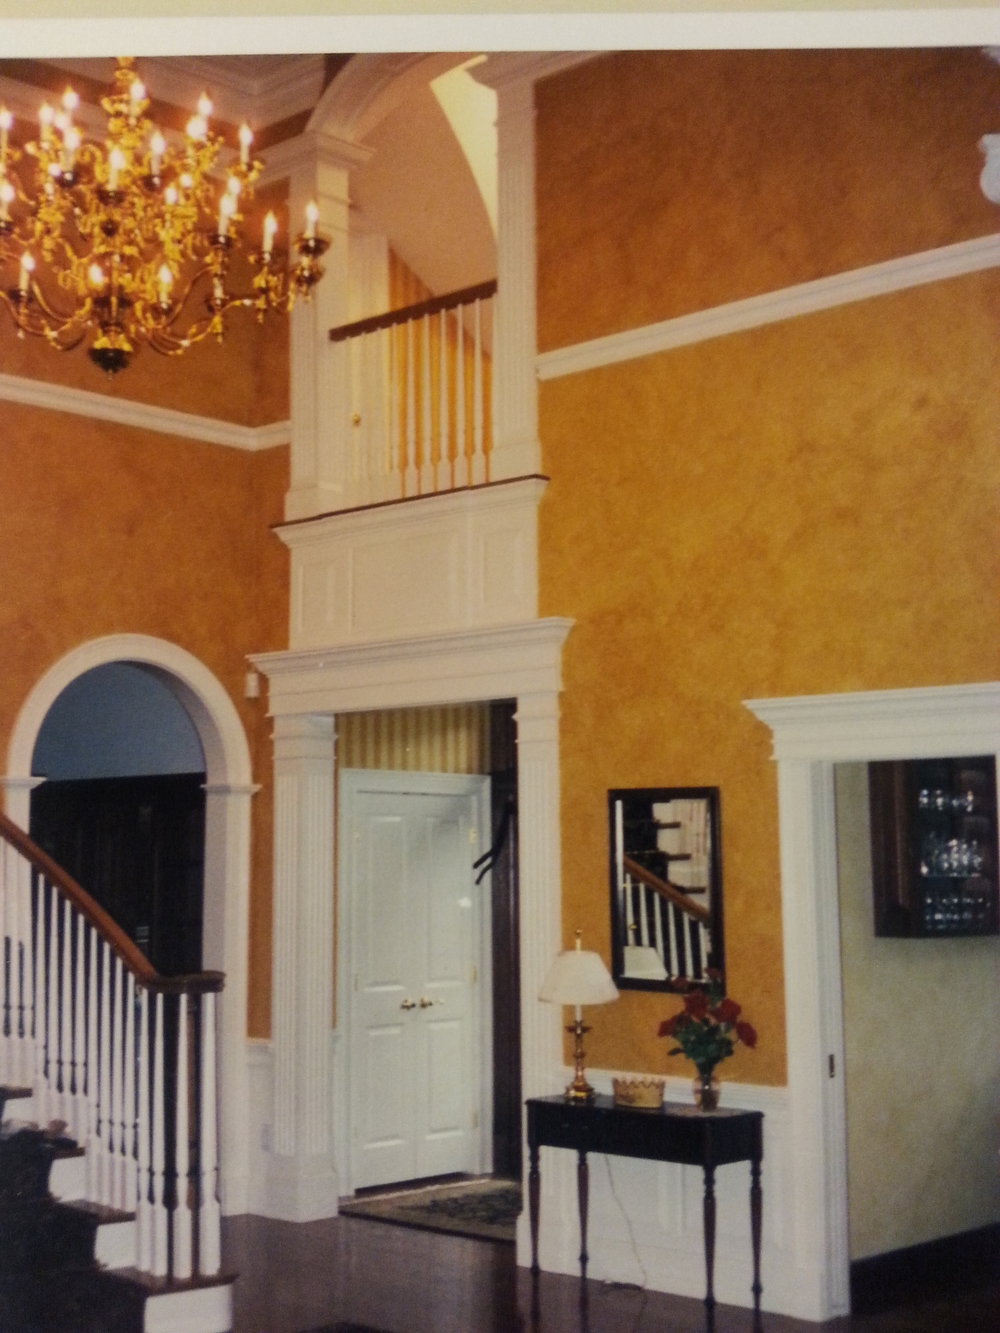 Mottled walls - Foyer.jpg